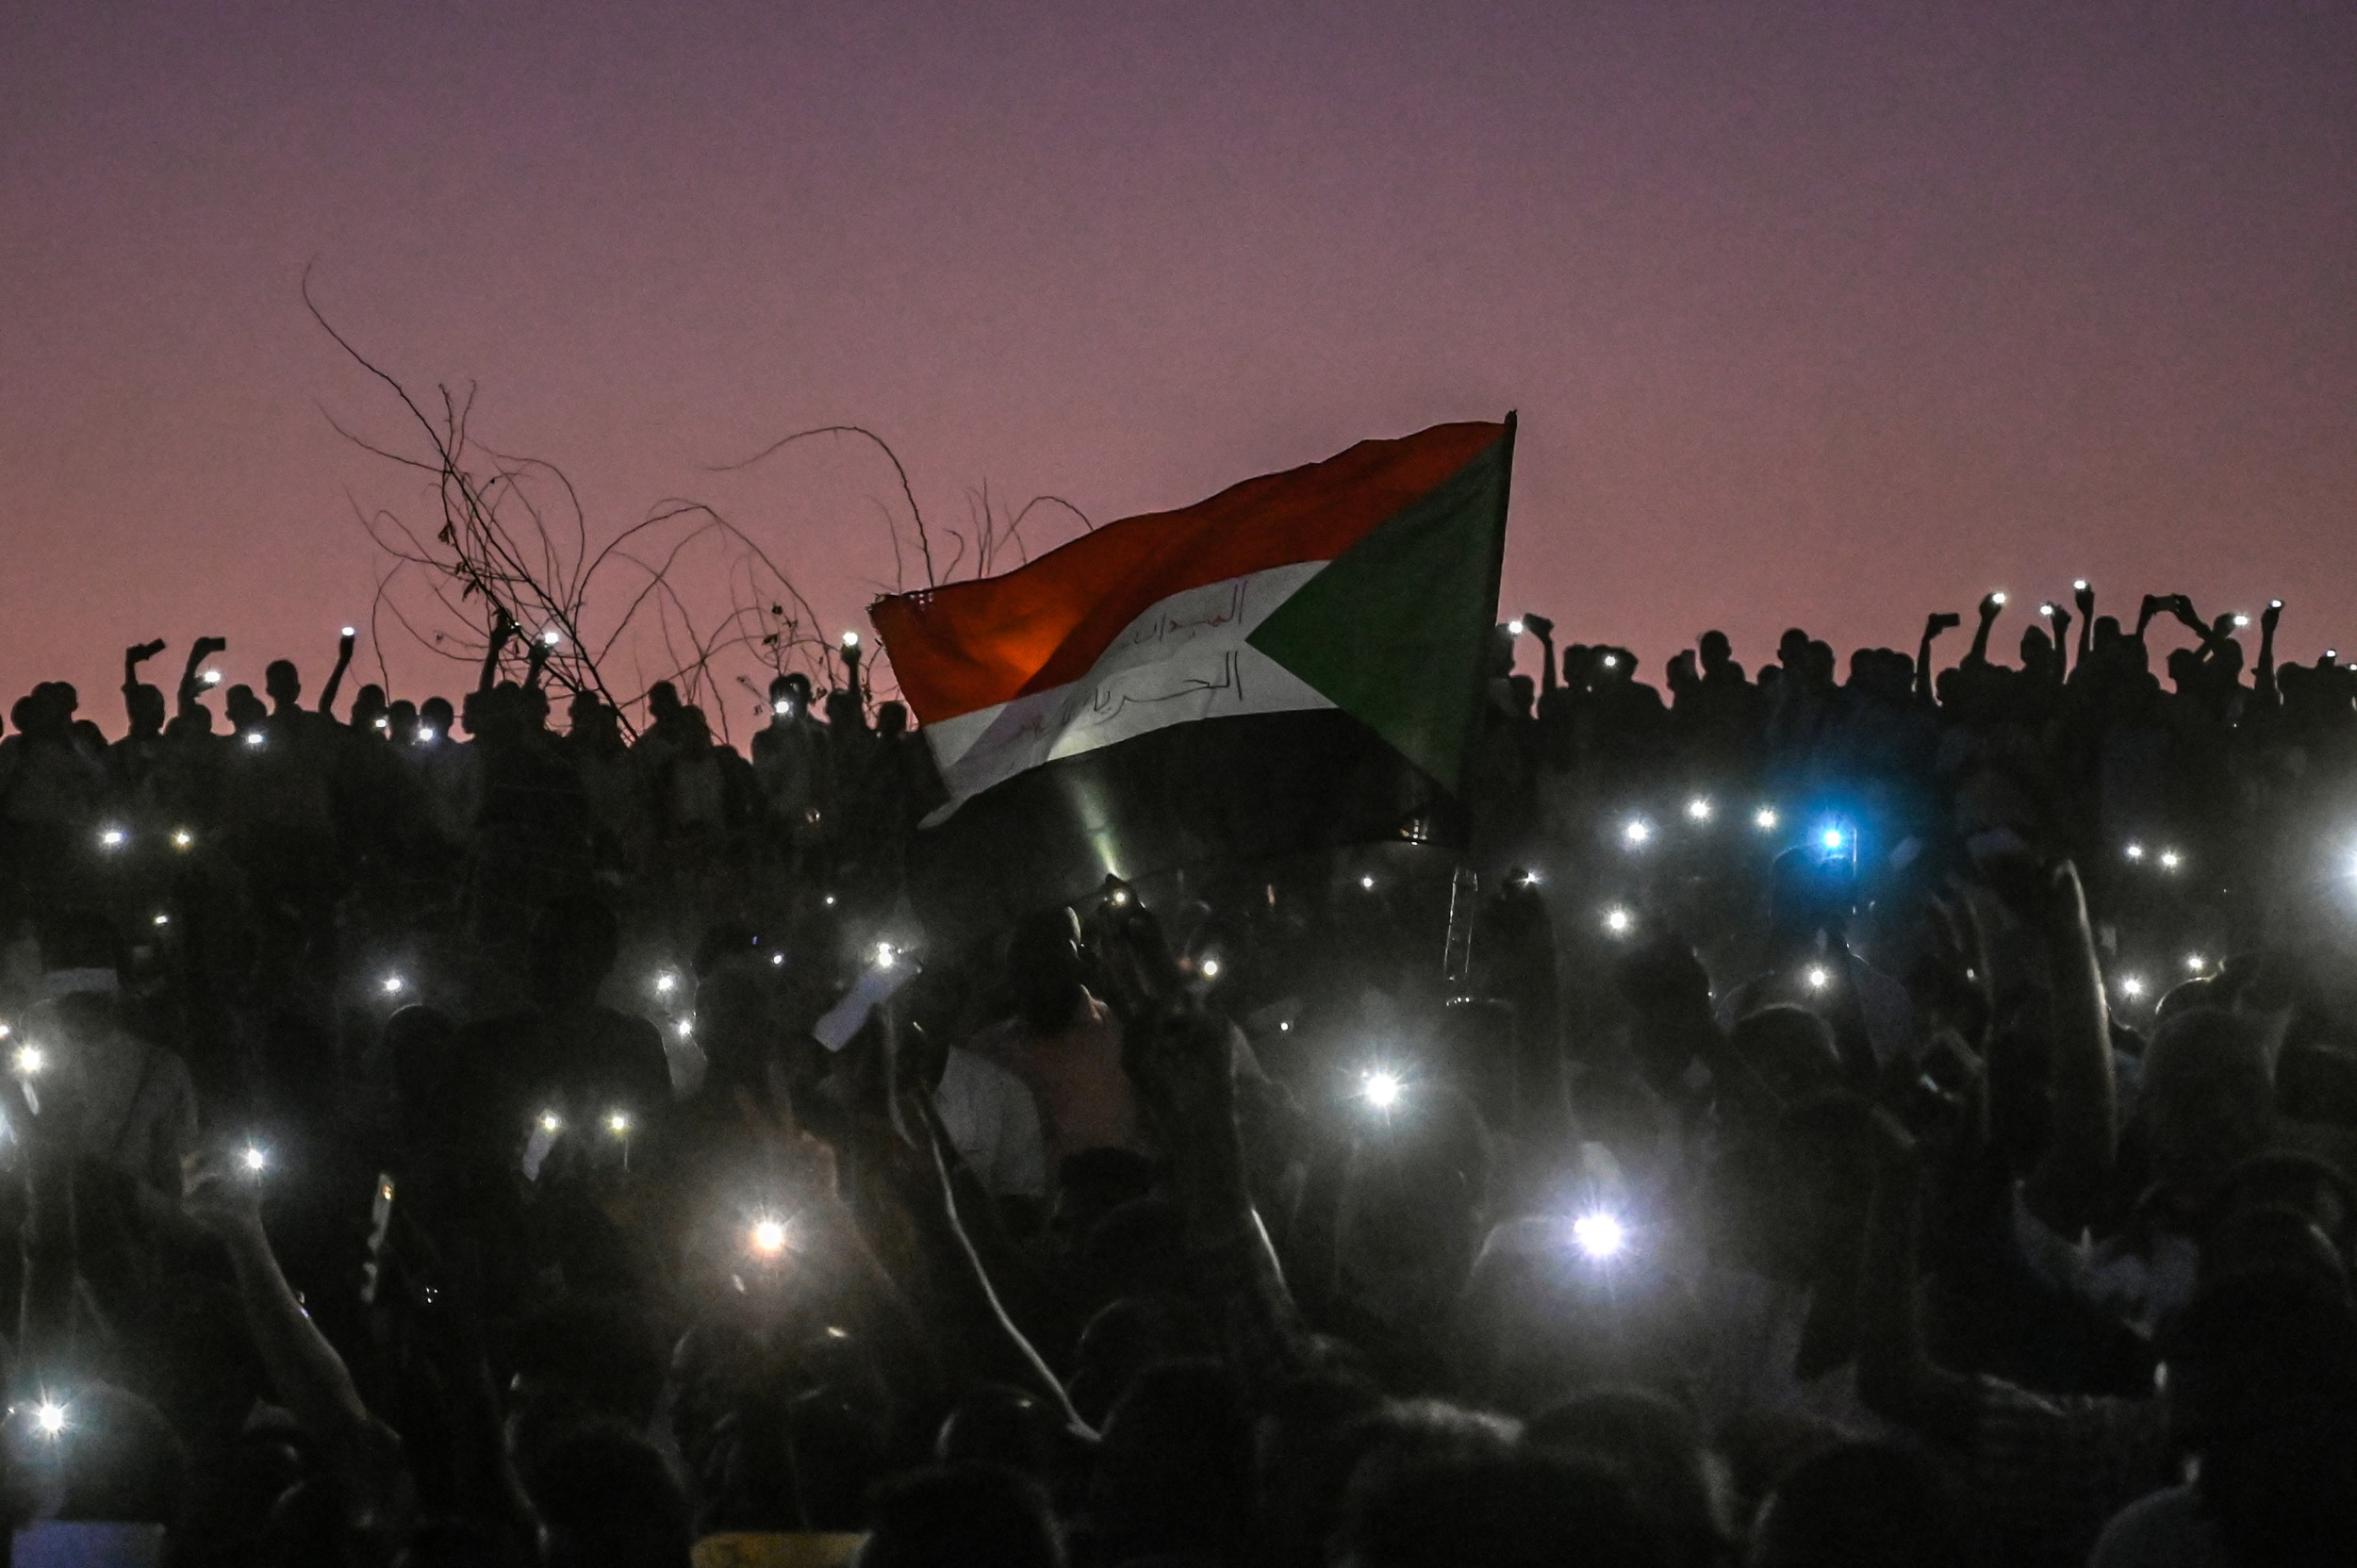 Sudanese protesters open their smartphones lights during a protest outside the army headquarters in the capital Khartoum on 21 April 2019 (AFP)